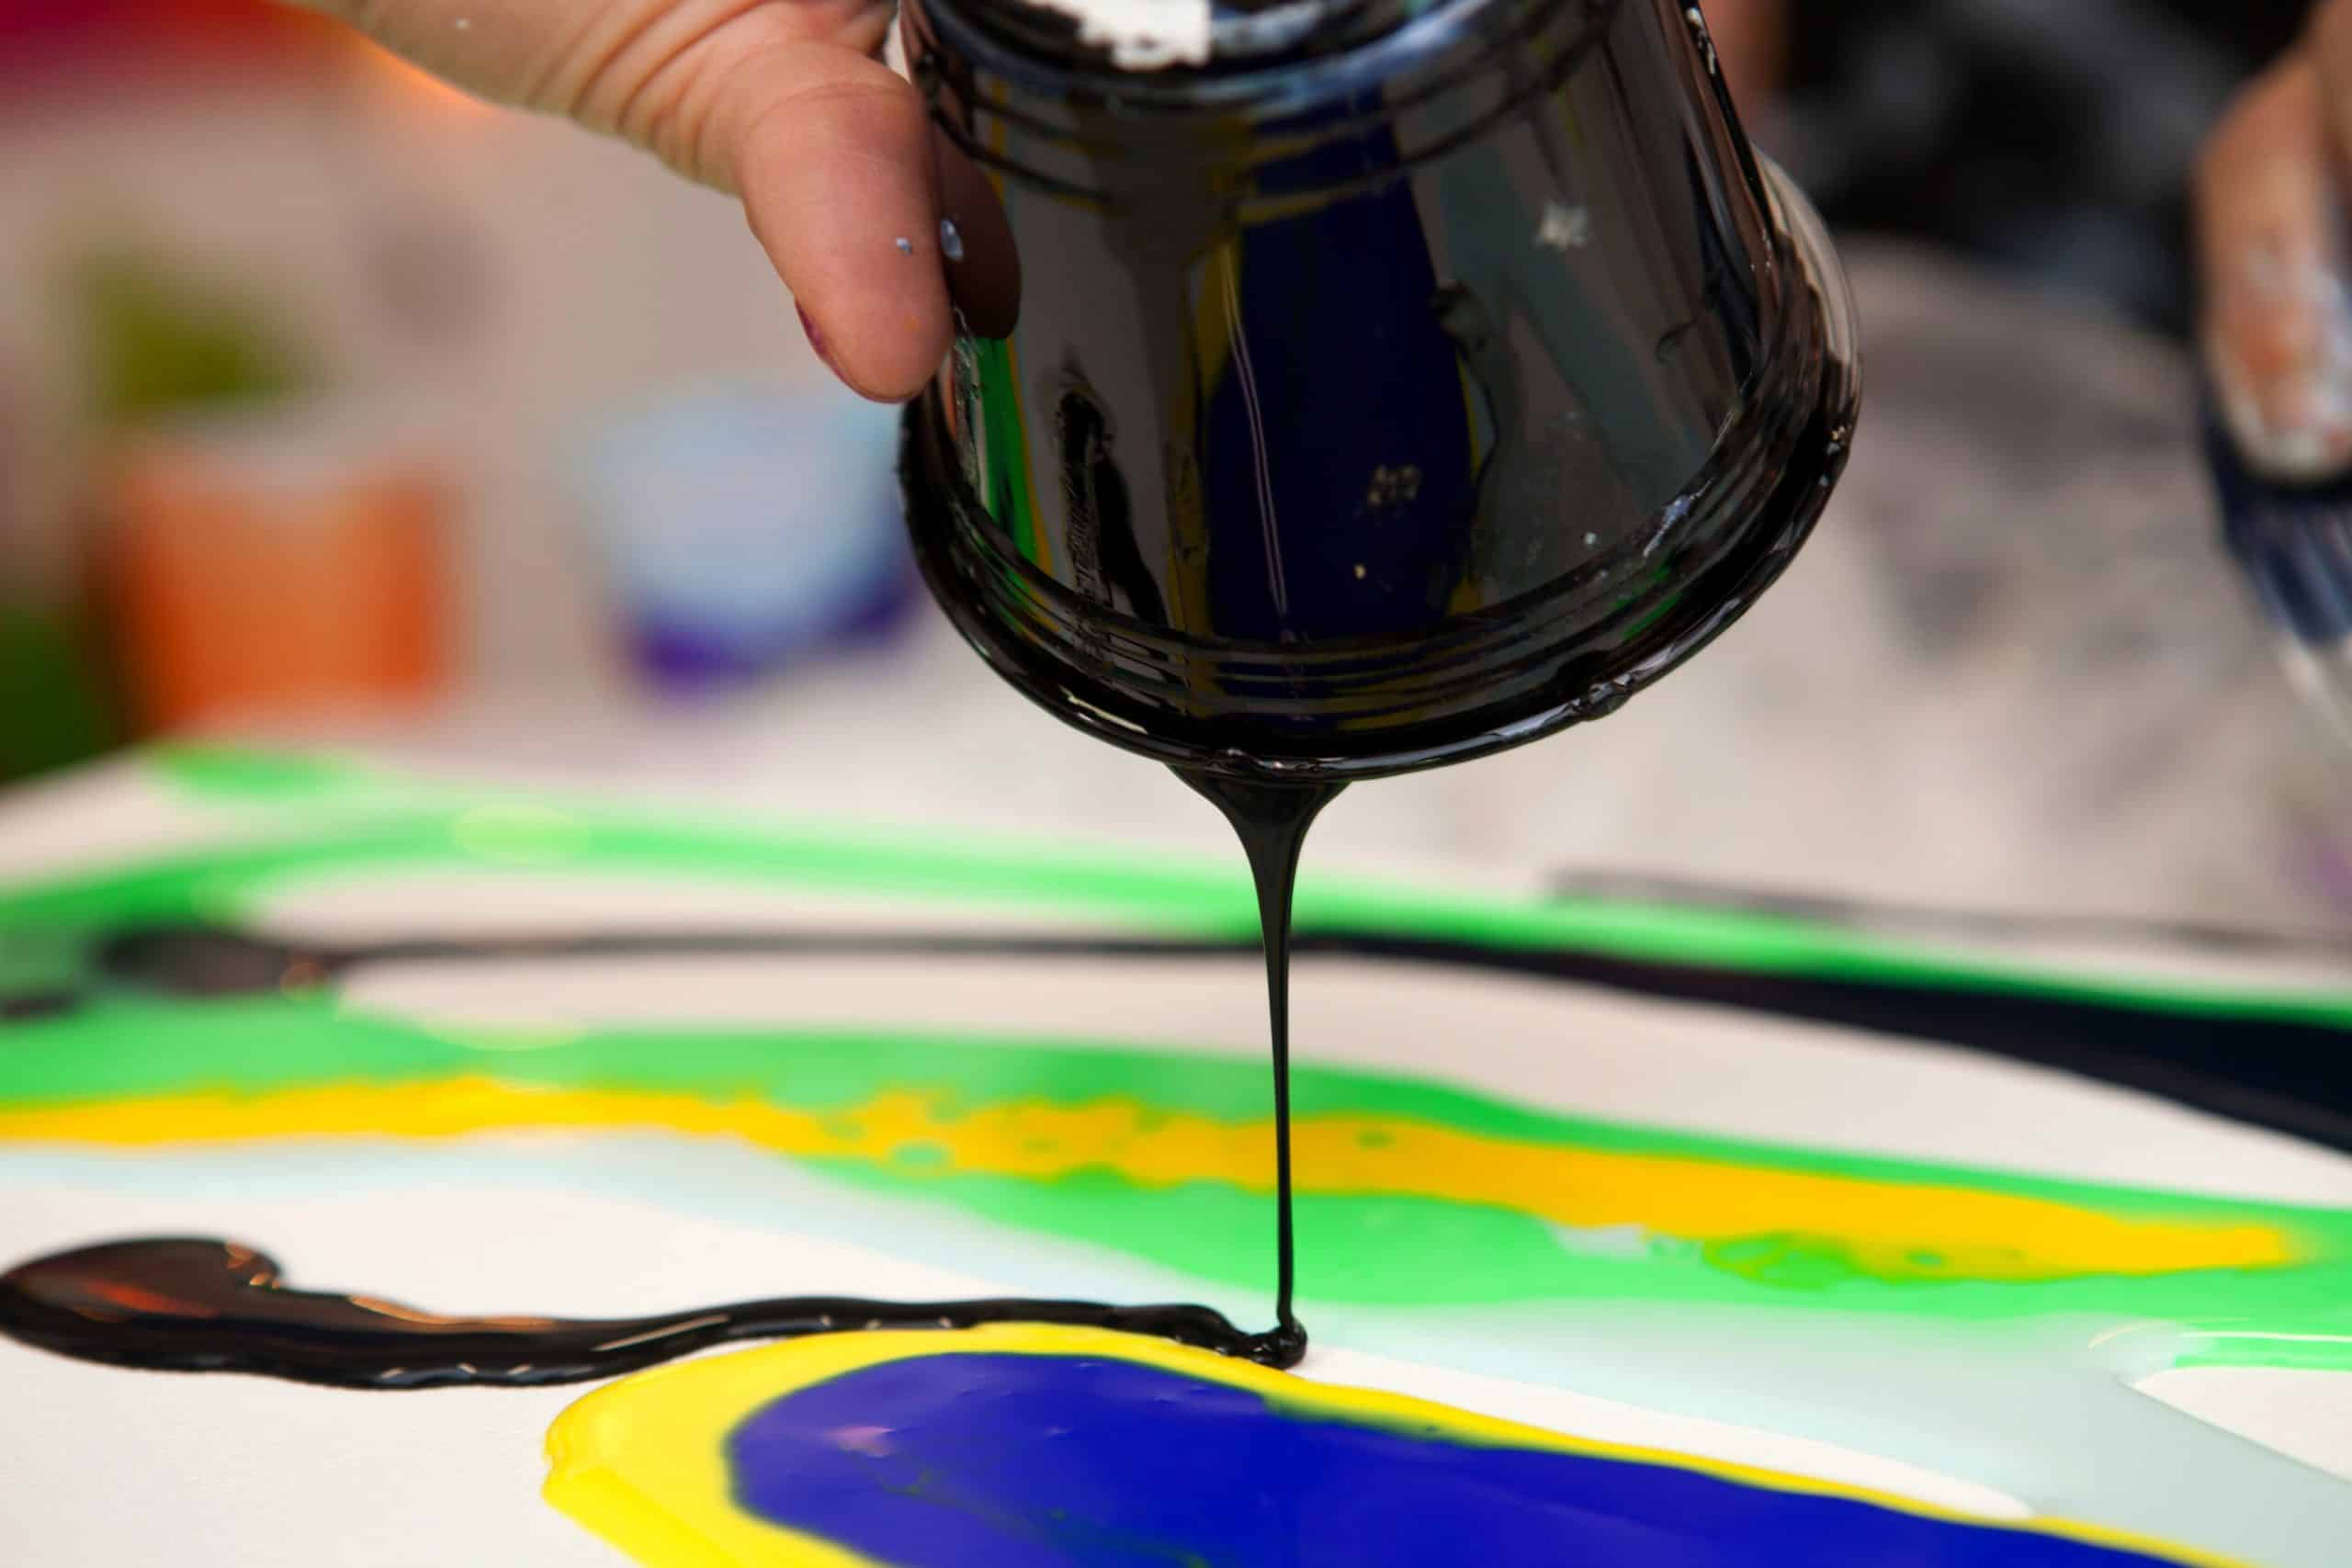 A person pours a small stream of black paint from a plastic cup onto a canvas with swirls of green neon and yellow during the process of fluid painting with acrylic paints mixed with floetrol medium.; Shutterstock ID 1420128320; Purchase Order: AD126